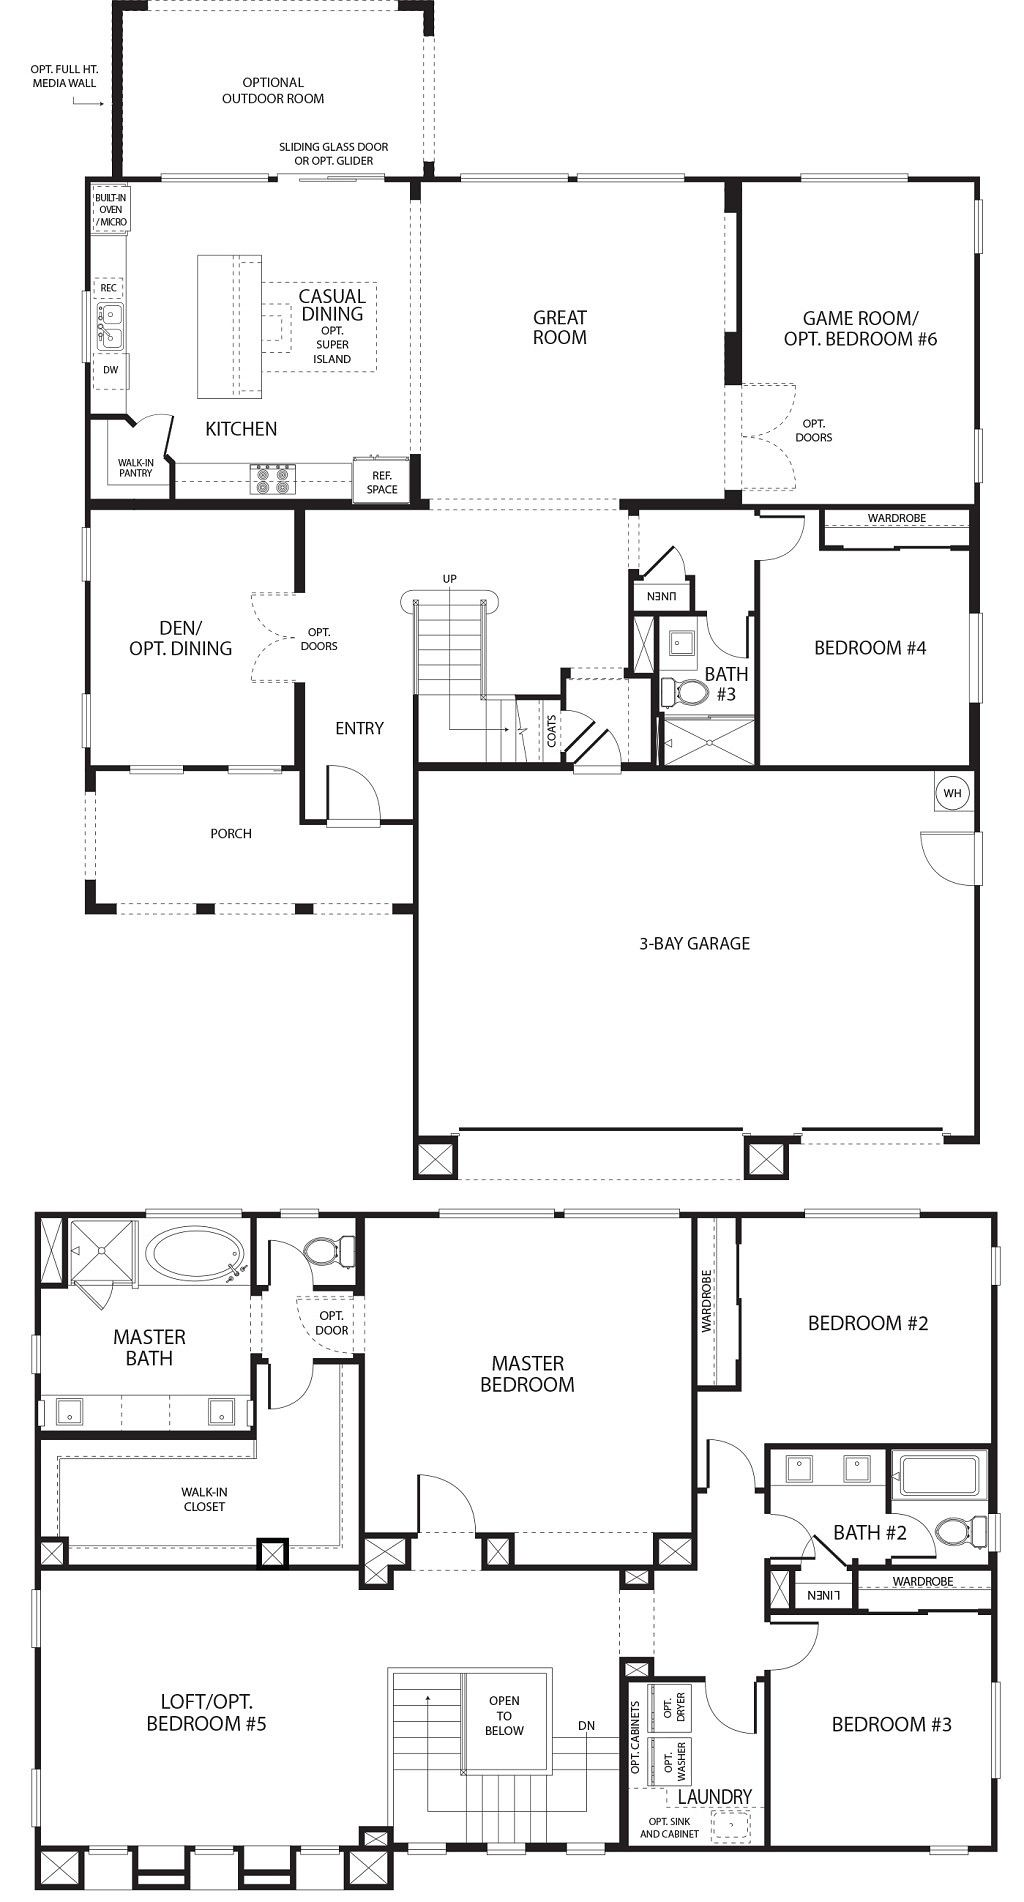 Woodmont Plan 2 Floorplan Simple floor plans, Modern